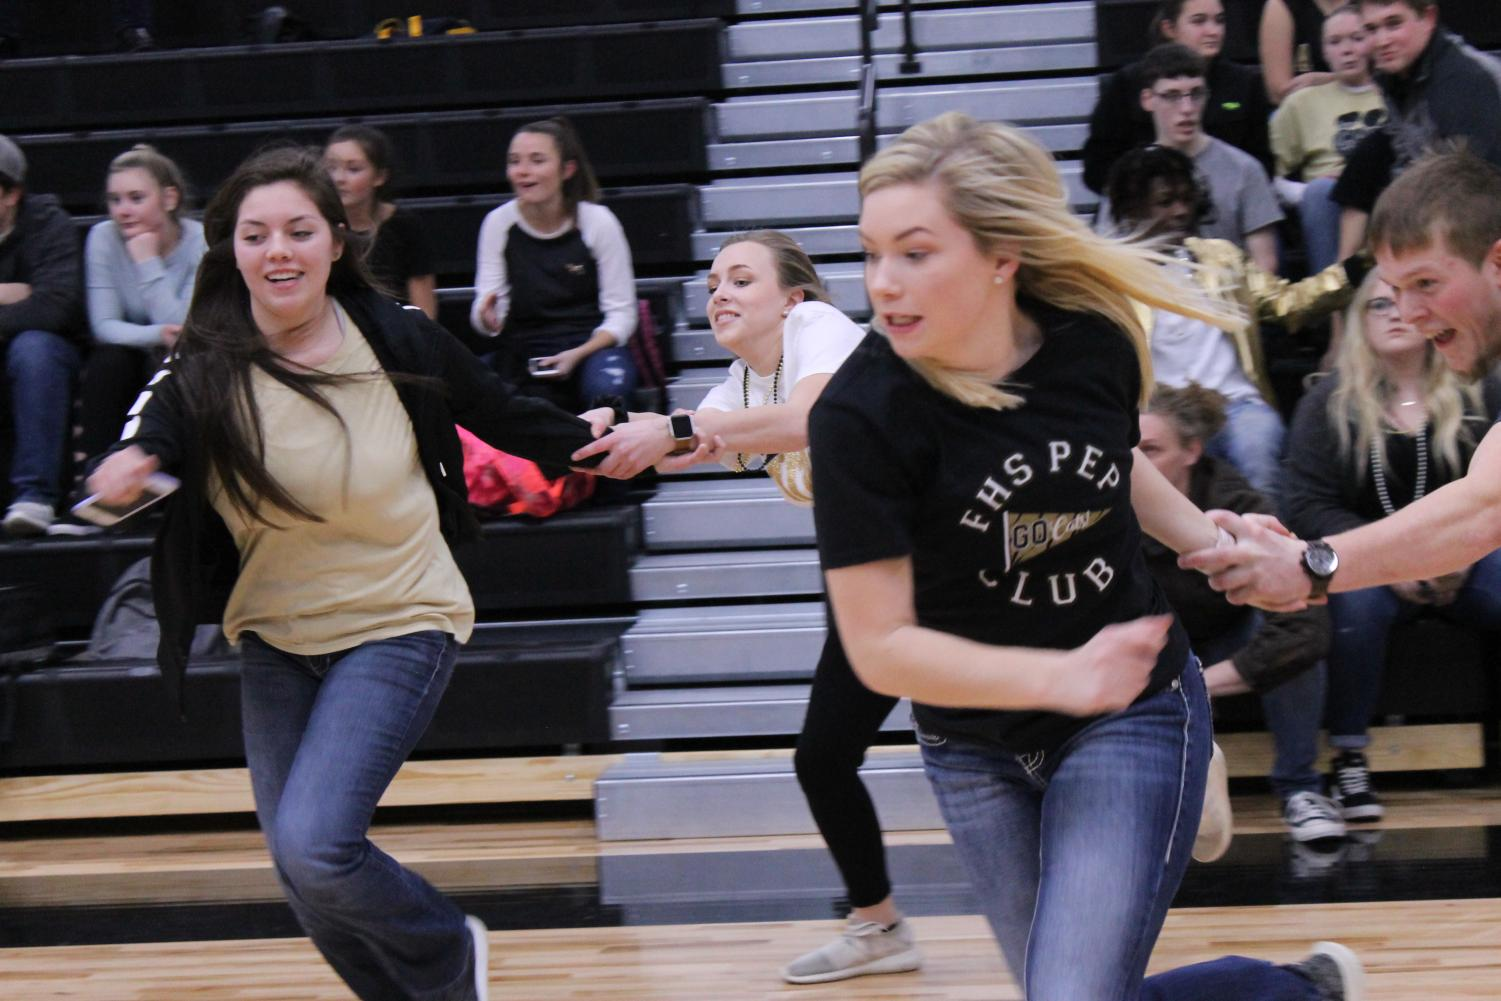 Kylie Mann and Mattie Whitworth running to win the Scavenger Hunt